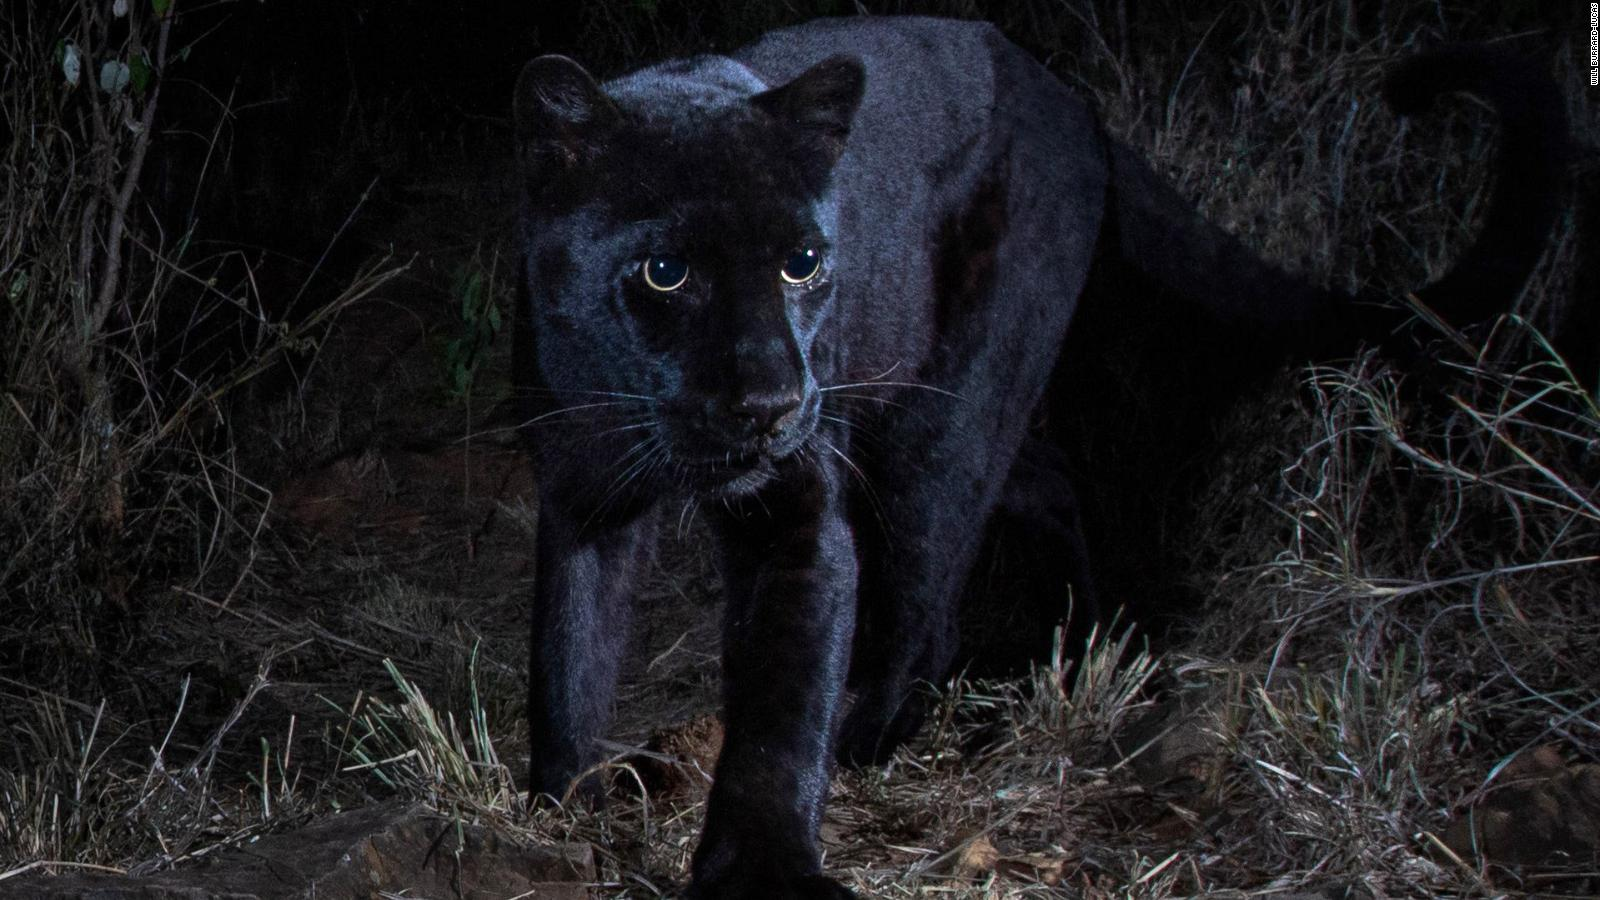 New Name Same Mission Aane Is Now >> Rare Black Leopard Captured In New Images From Kenya Cnn